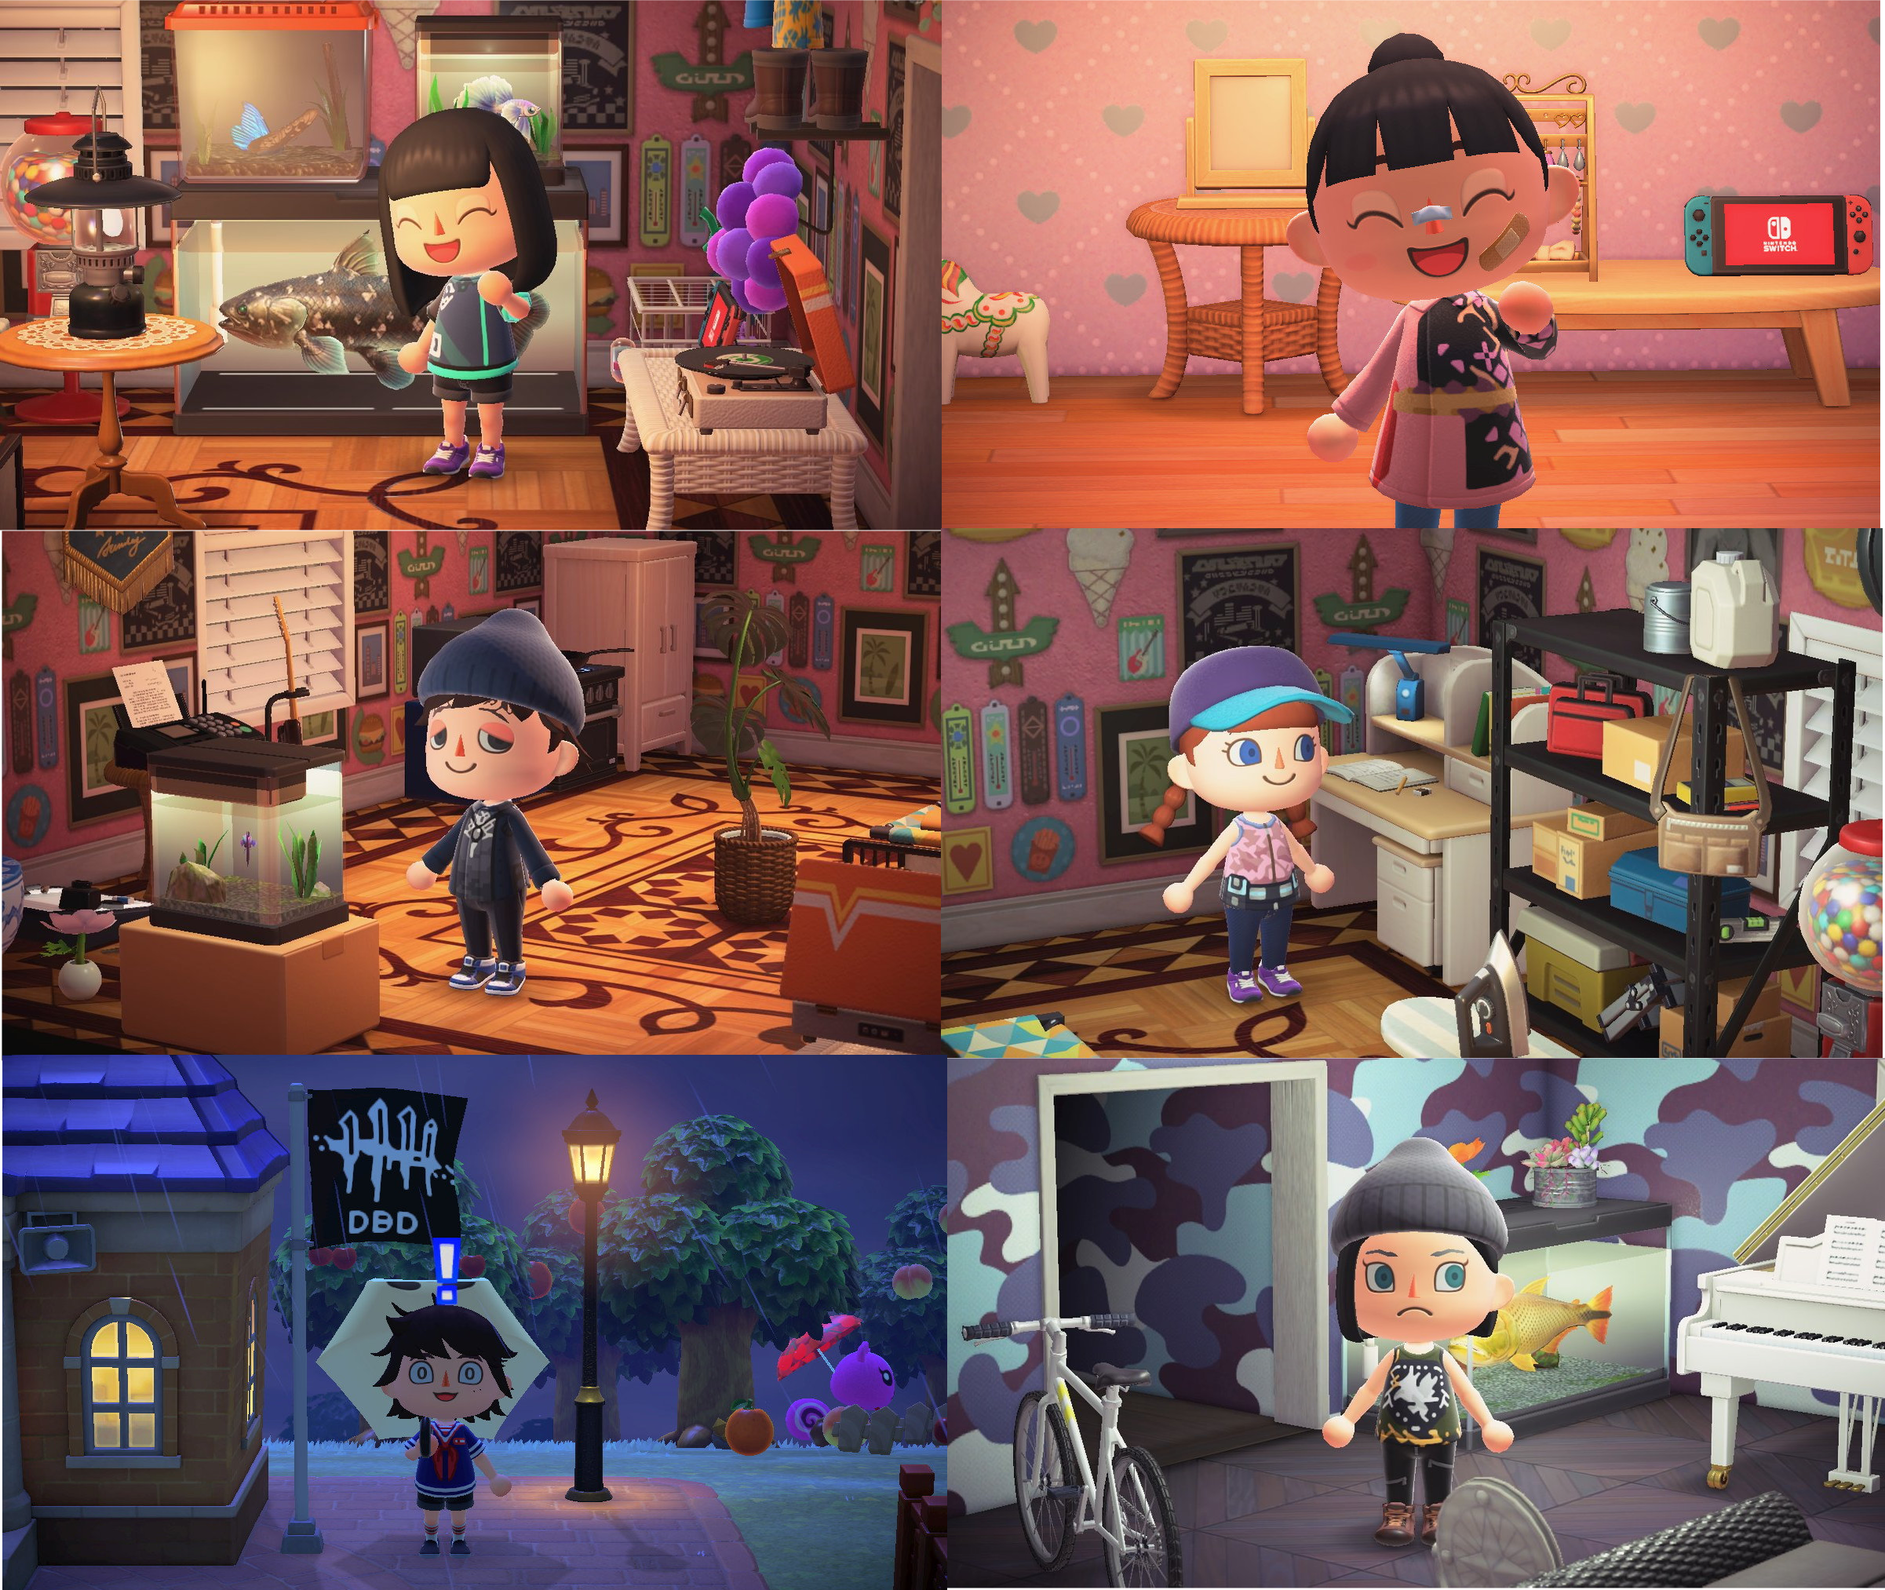 Some Dbd Characters In Animal Crossing Dead By Daylight